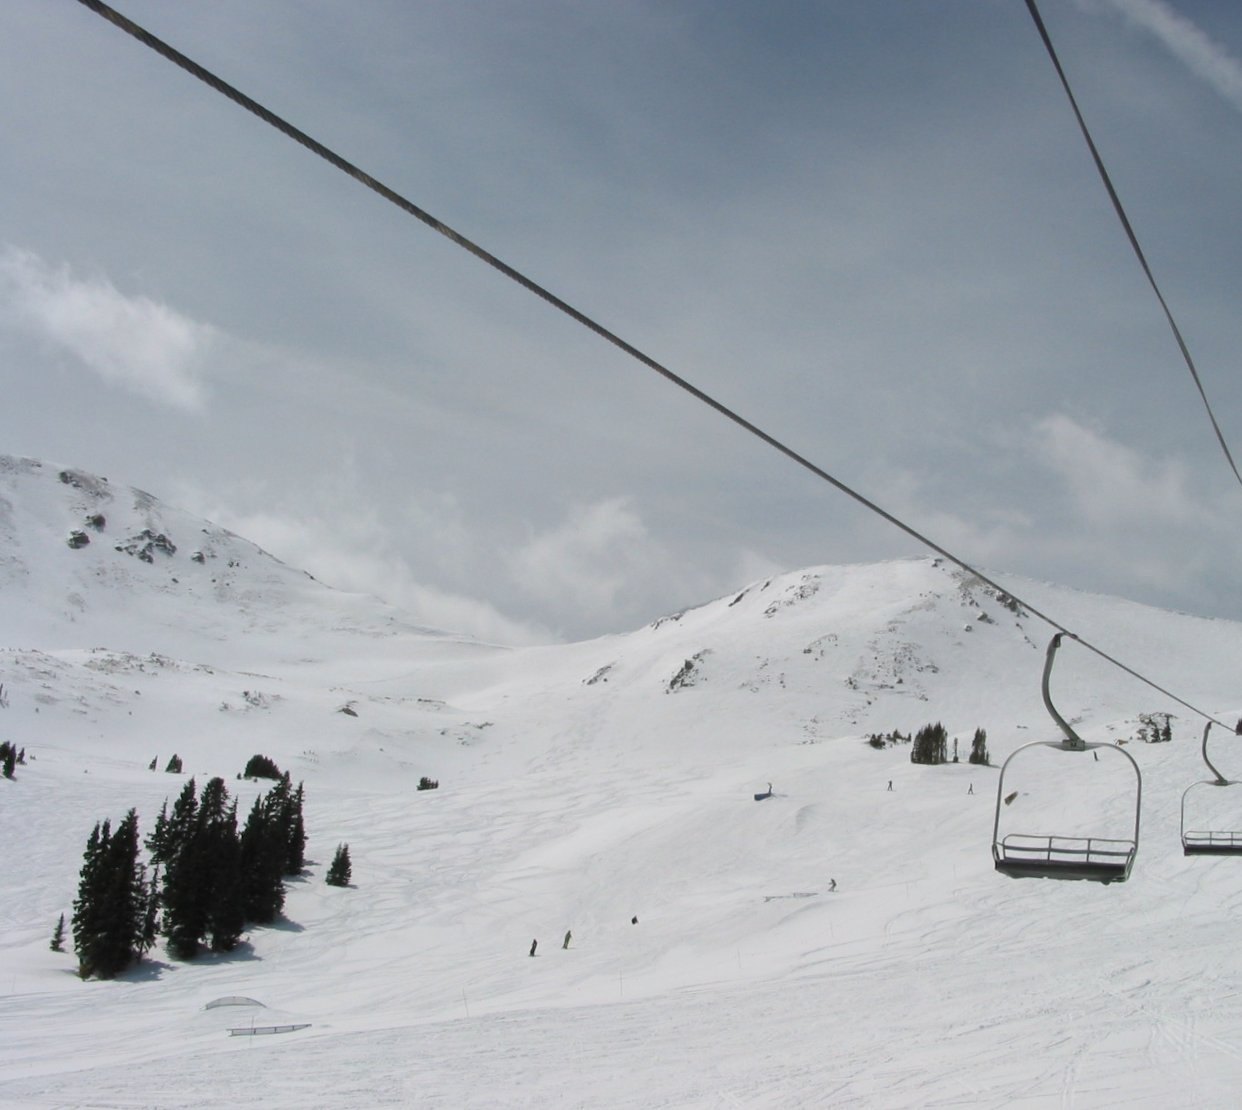 Looking up at the Wild Child ski run at Loveland Basin from Lift Two